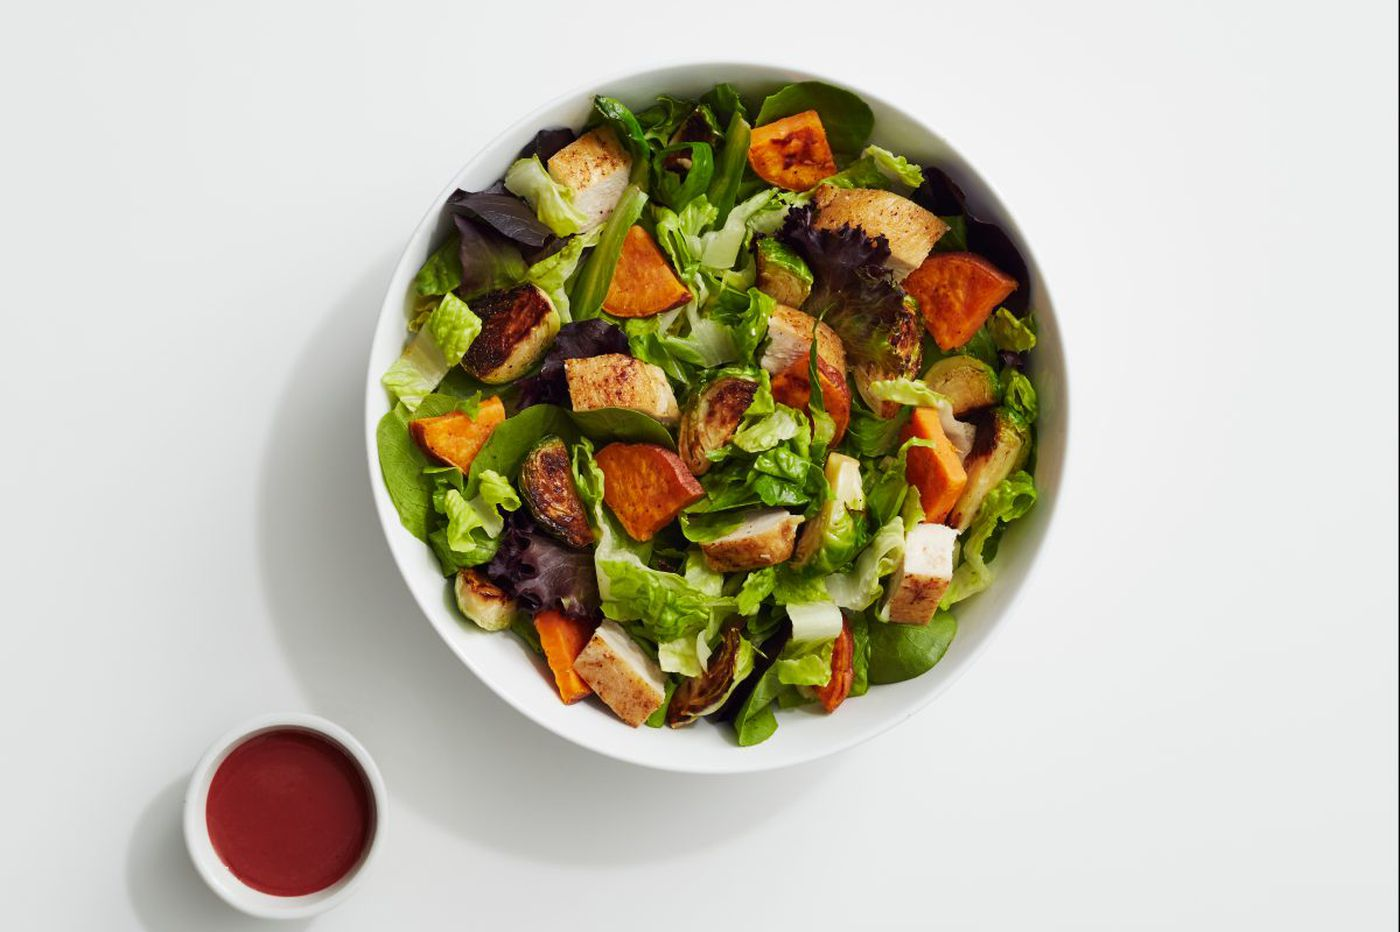 A New Year's salad with Brussels sprouts and sweet potatoes